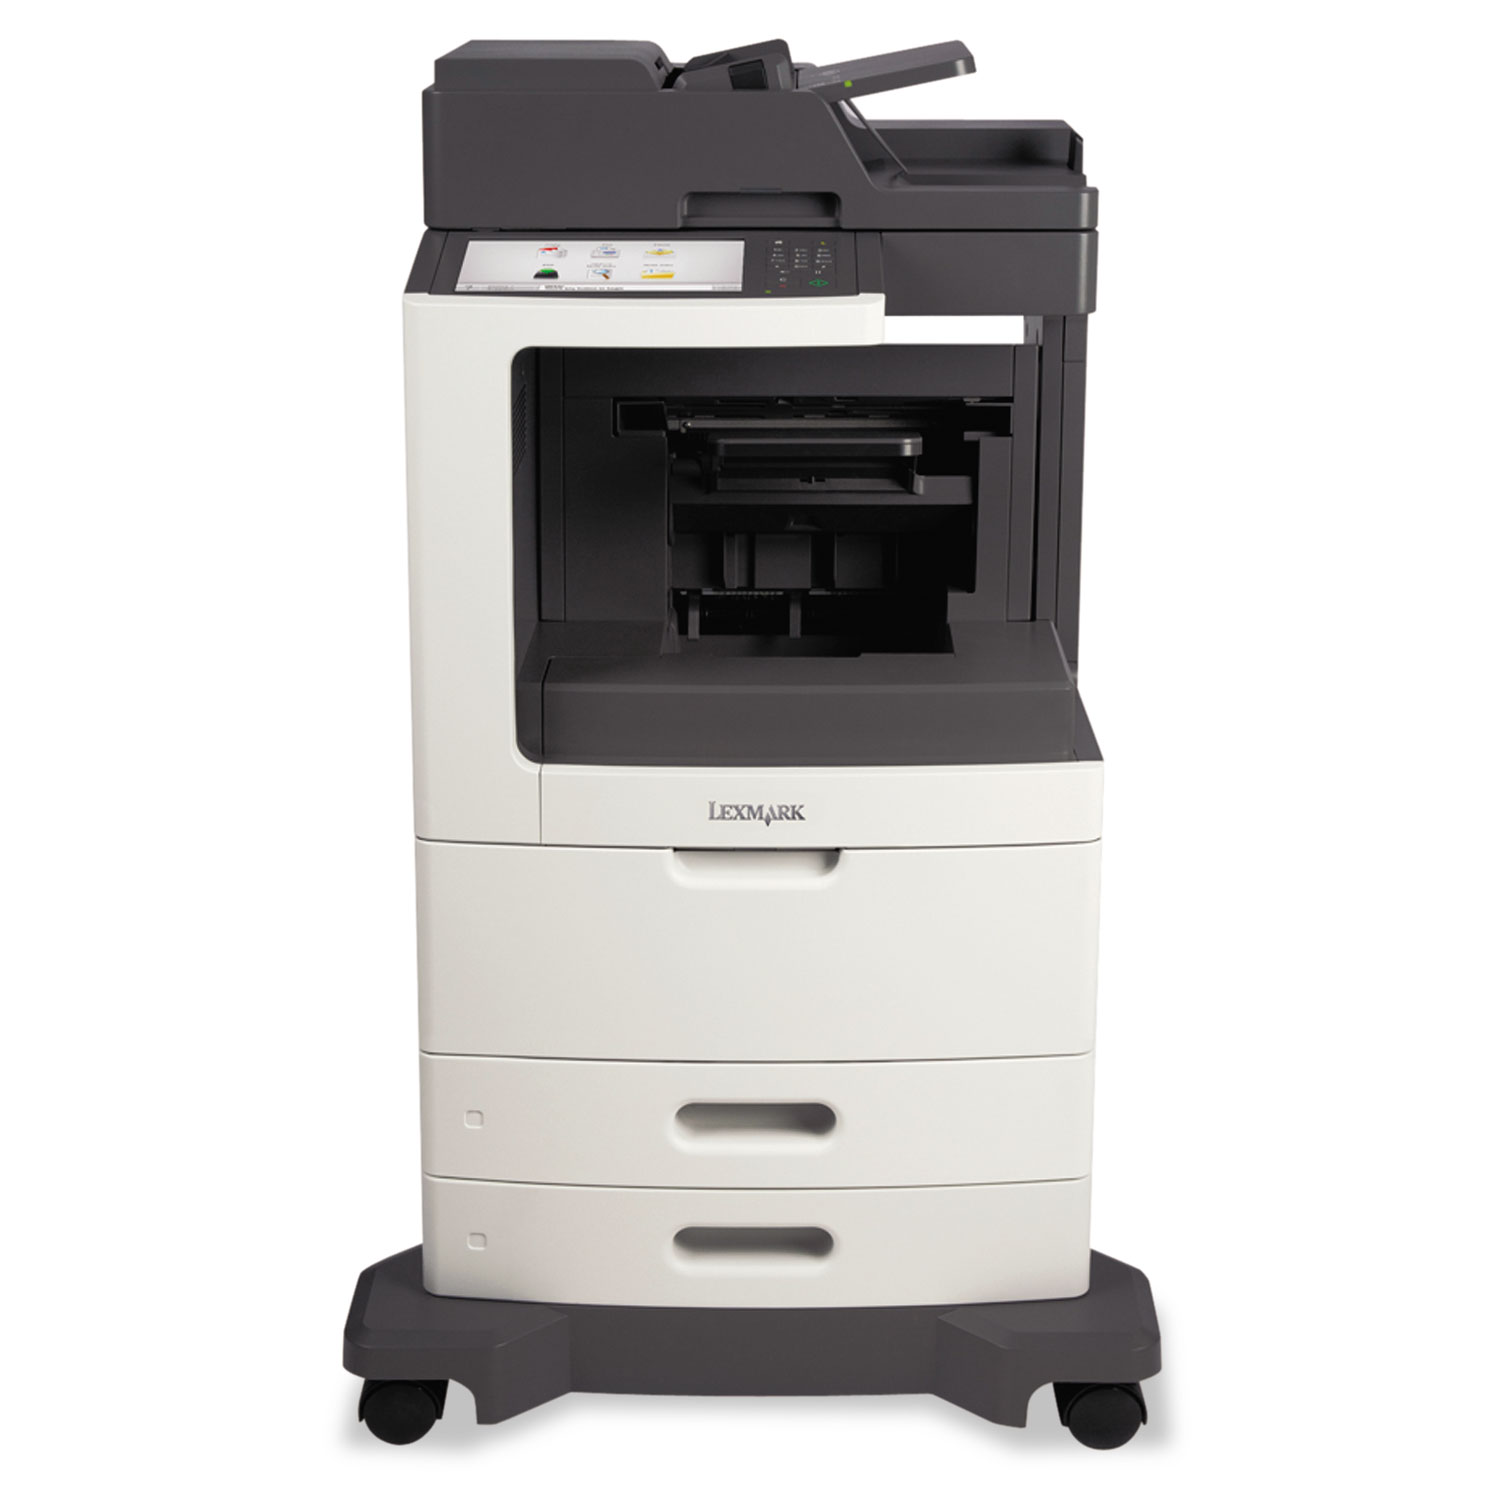 MX811de Multifunction Laser Printer, Copy/Fax/Print/Scan